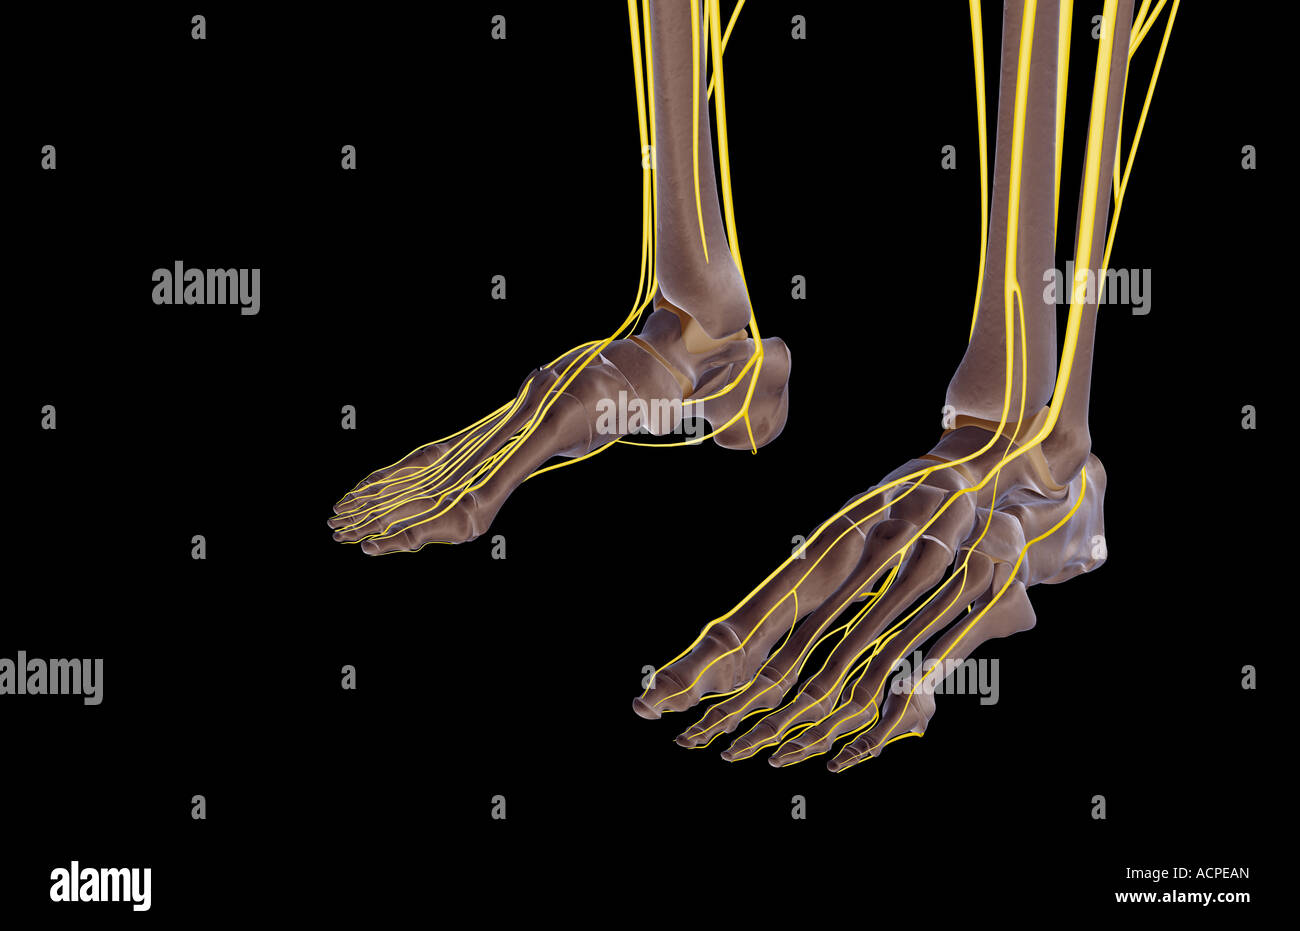 The Nerves Of The Feet Stock Photo 13207388 Alamy